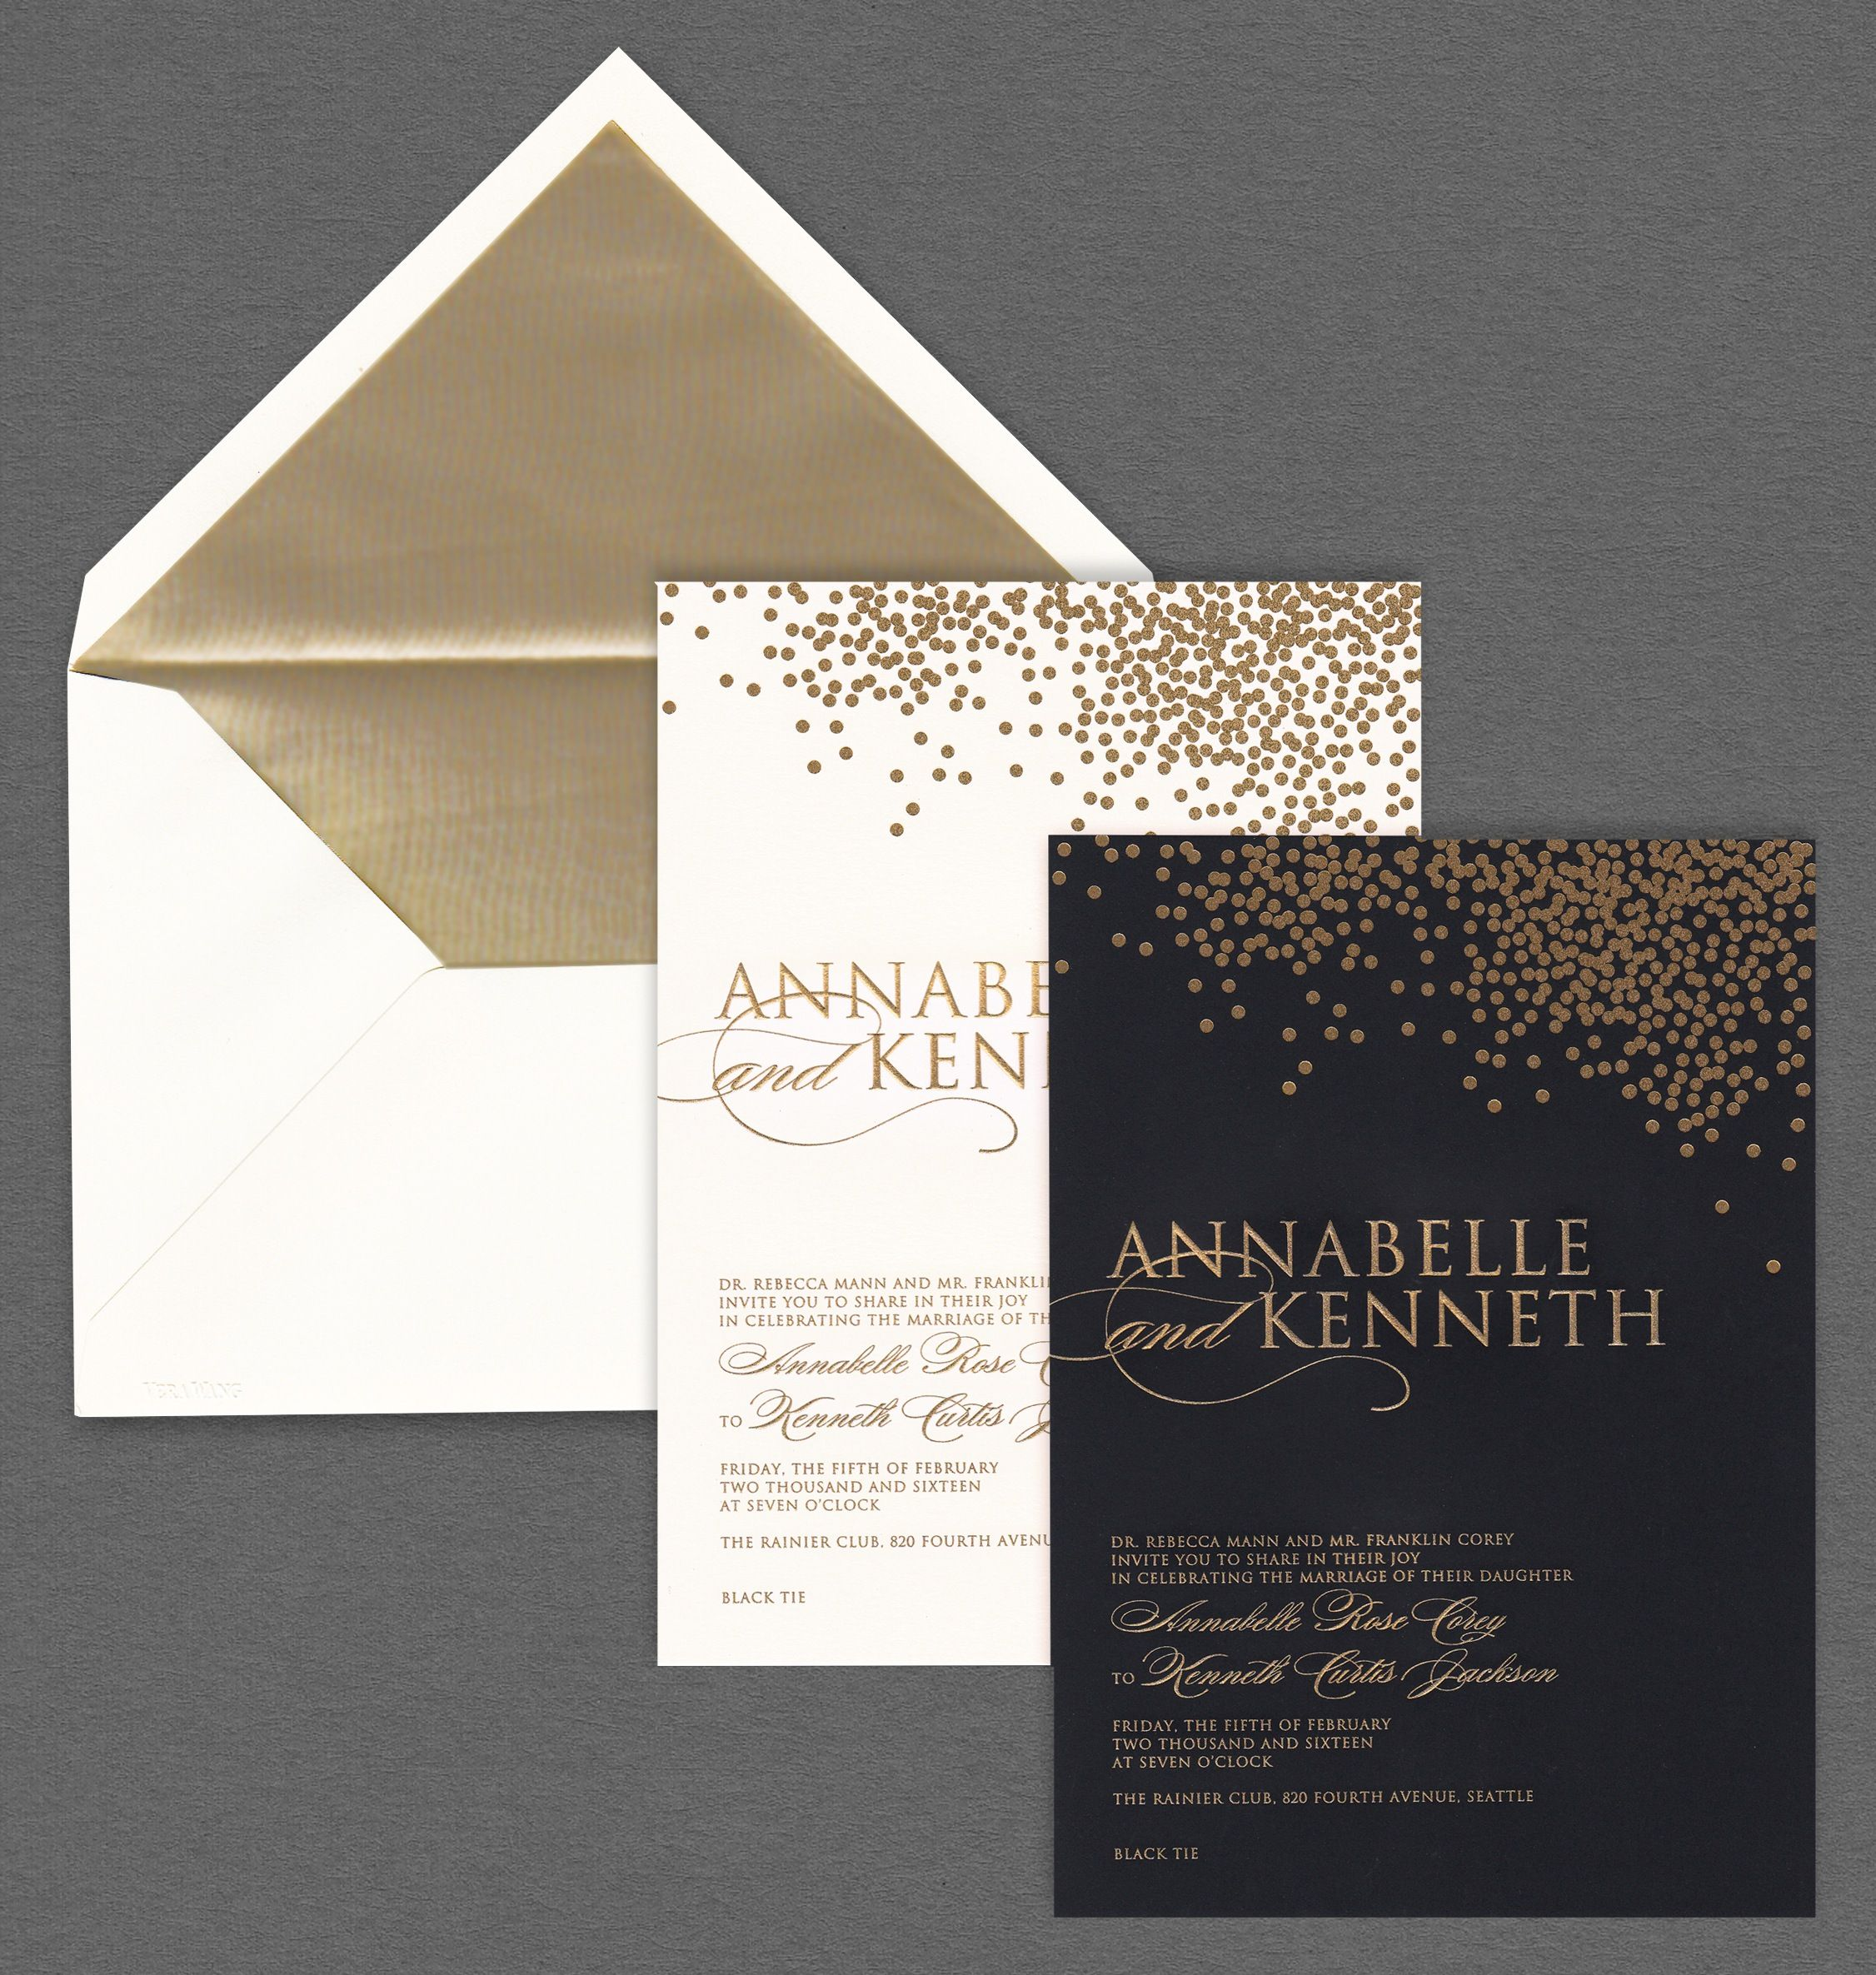 how to address wedding invites%0A Vera Wang oyster and black wedding invitations with gold confetti